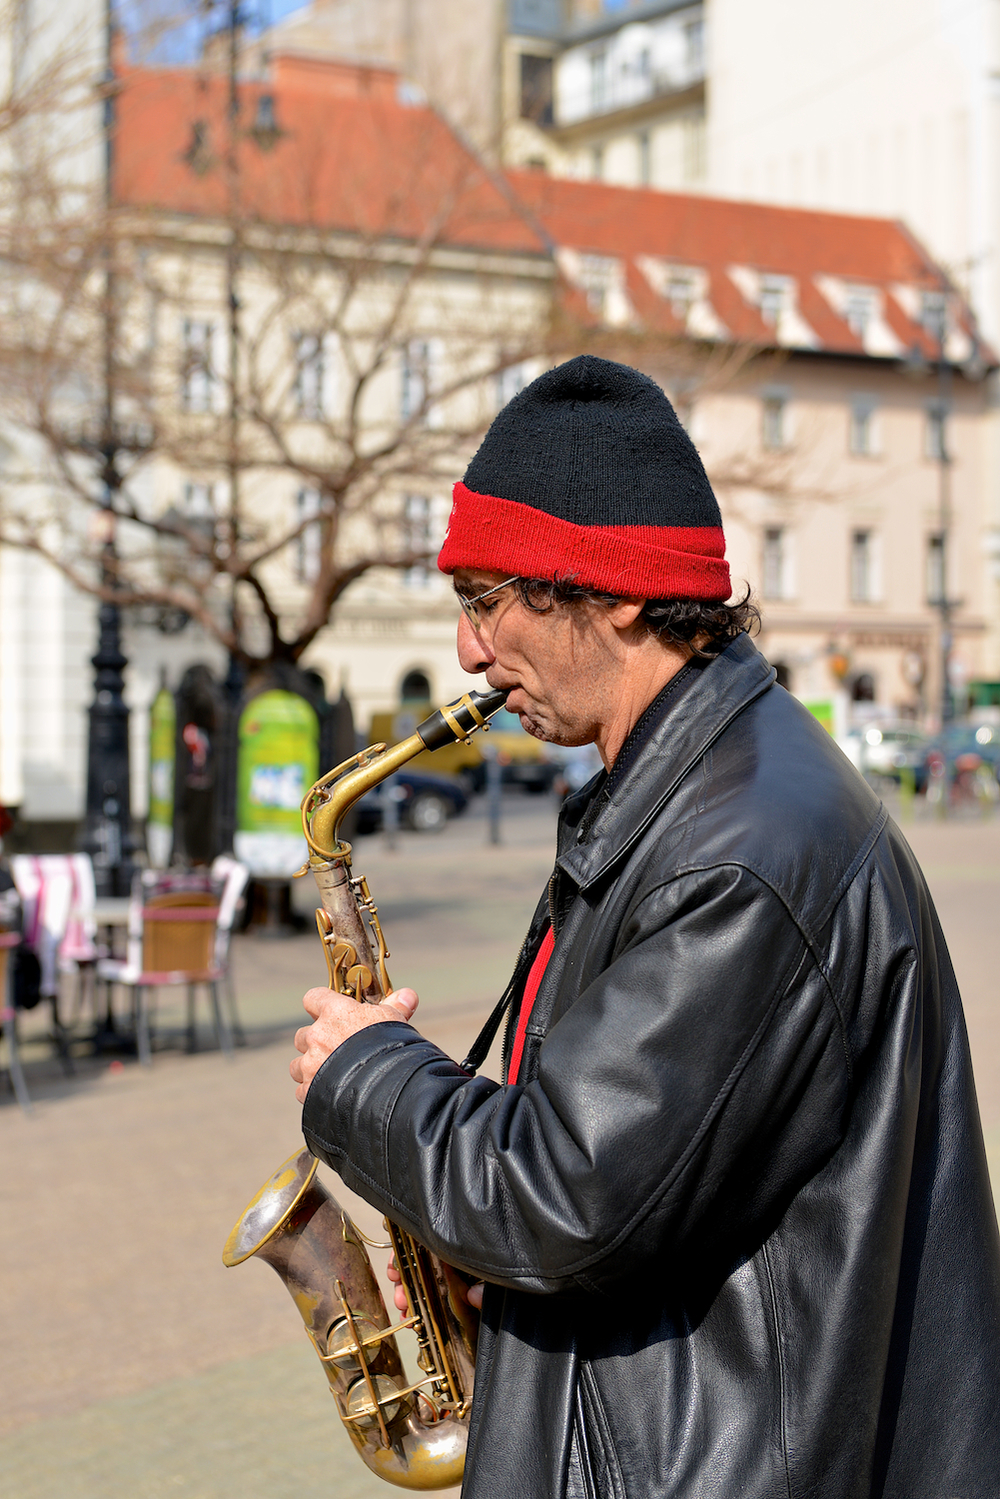 The Saxophone Player 01.jpg